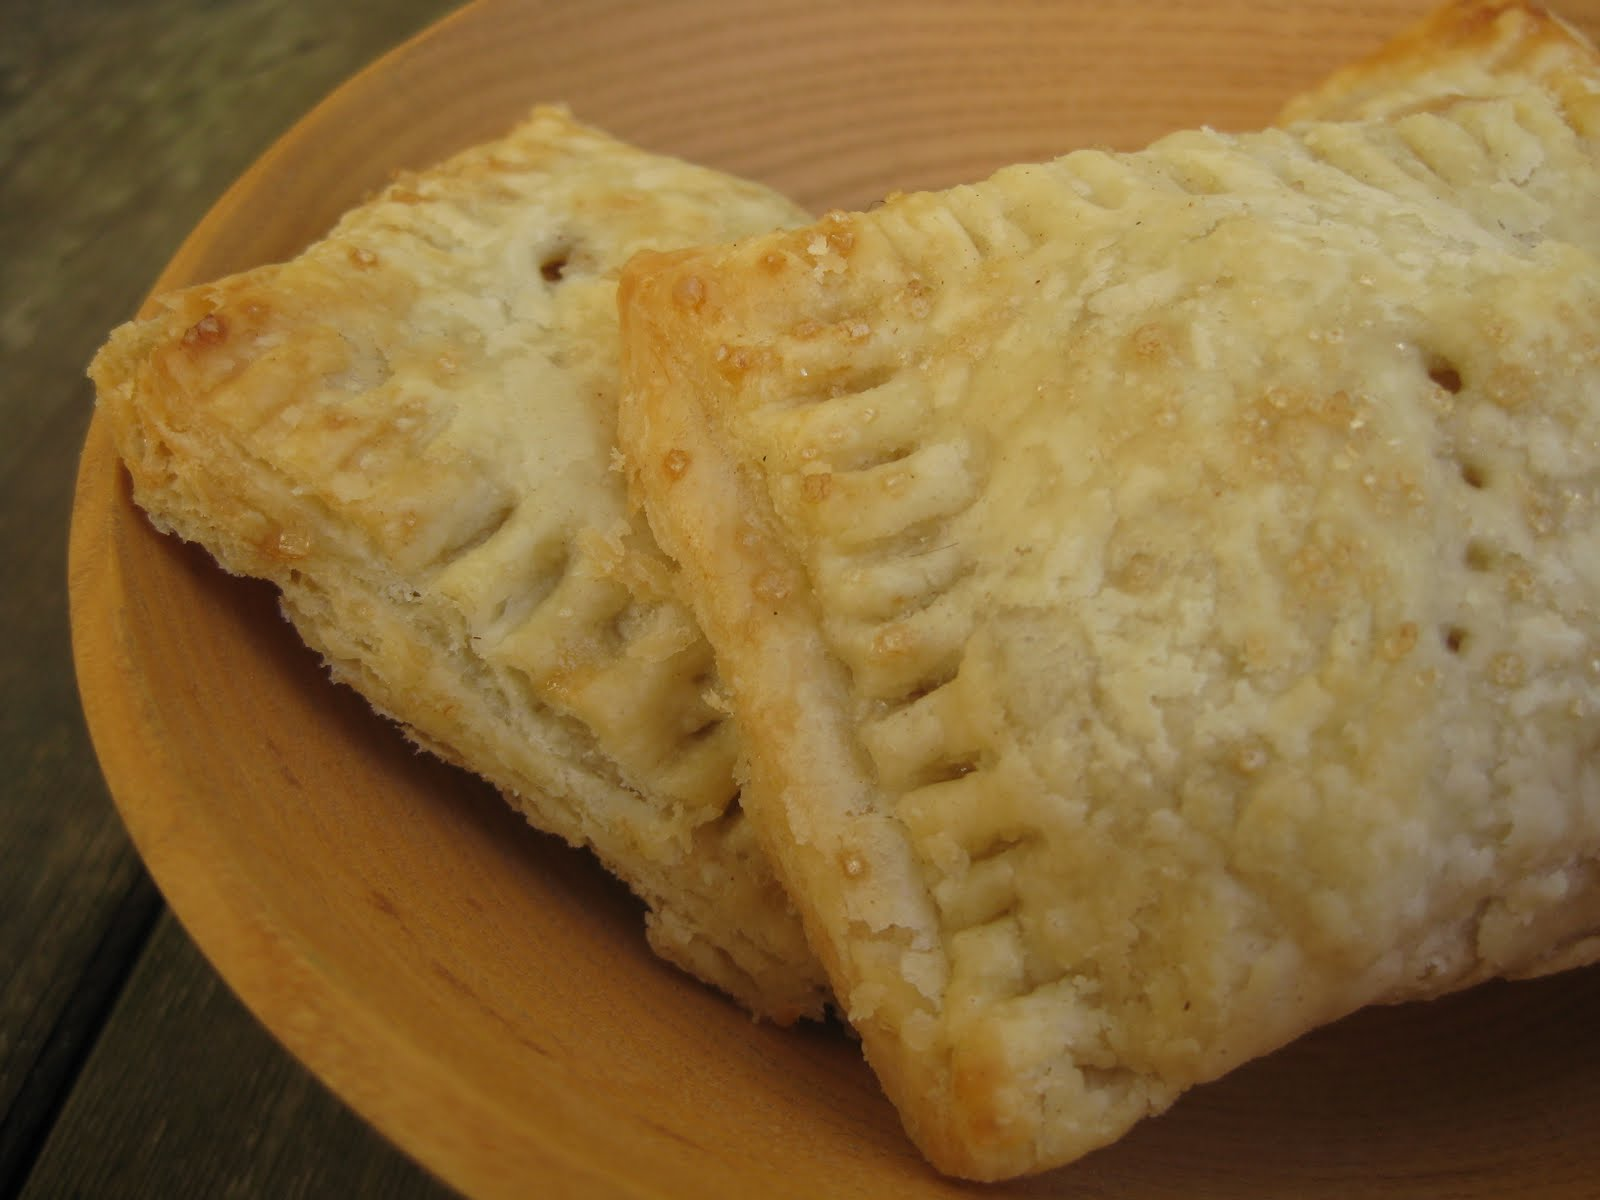 Apple turnovers are one of my favorite things to bake - rustic, fun ...